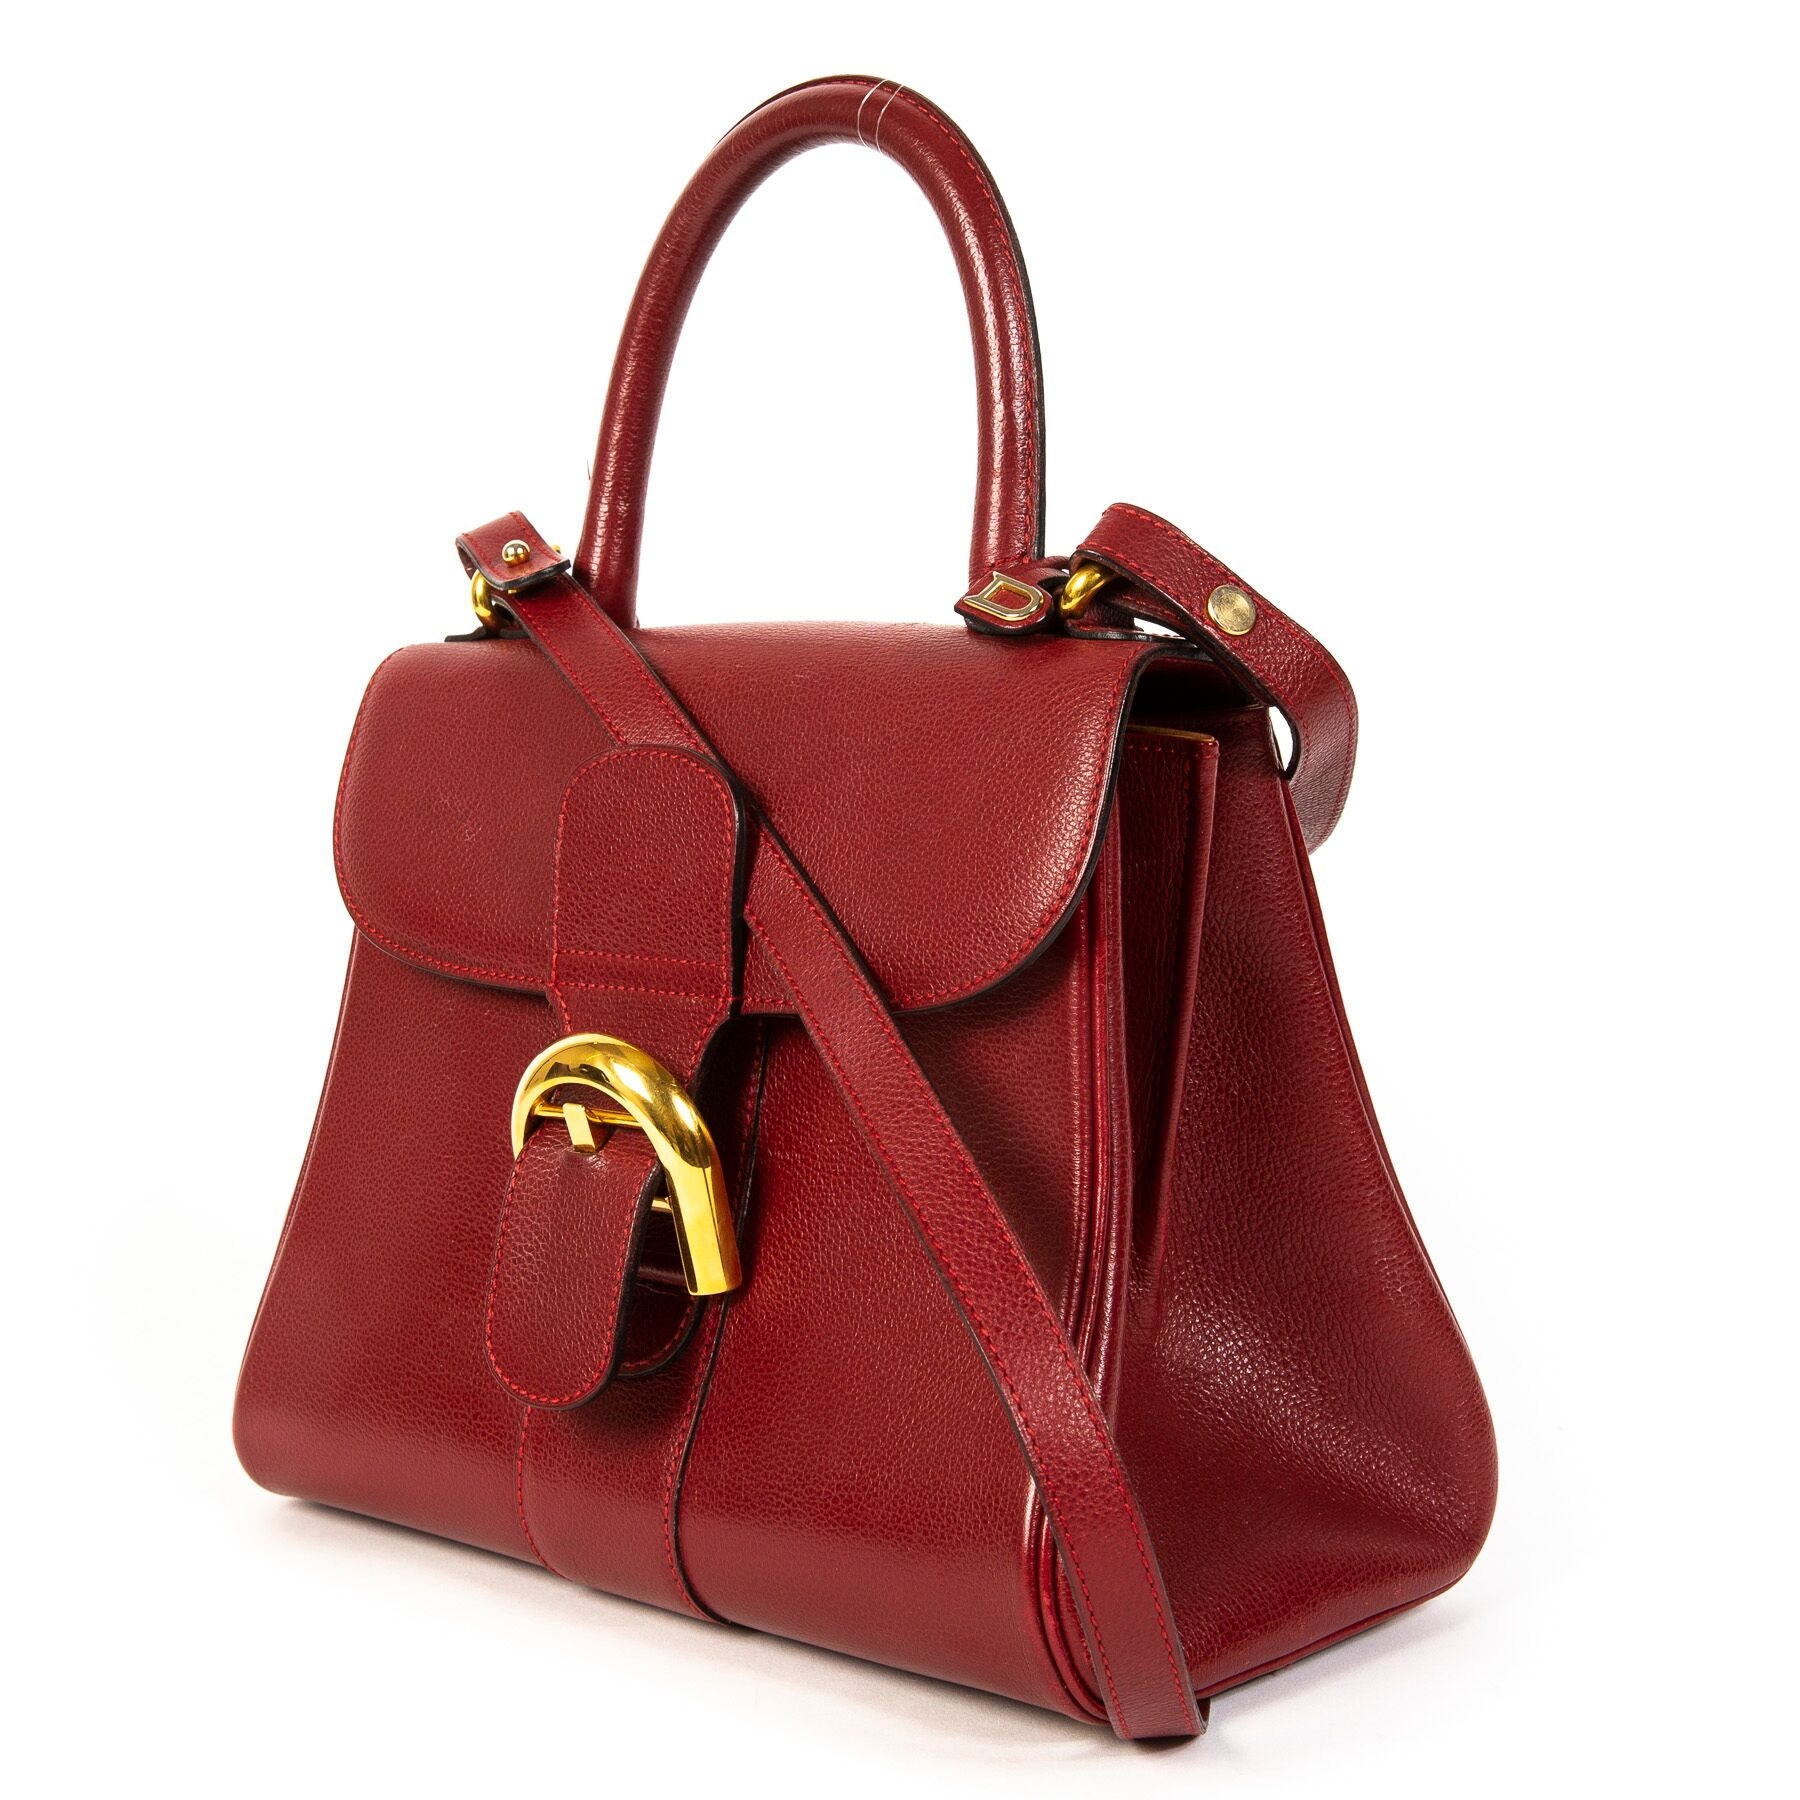 Buy iconic famous Brillant Delvaux bag at LabelLOV, original secondhand. Safe payment.